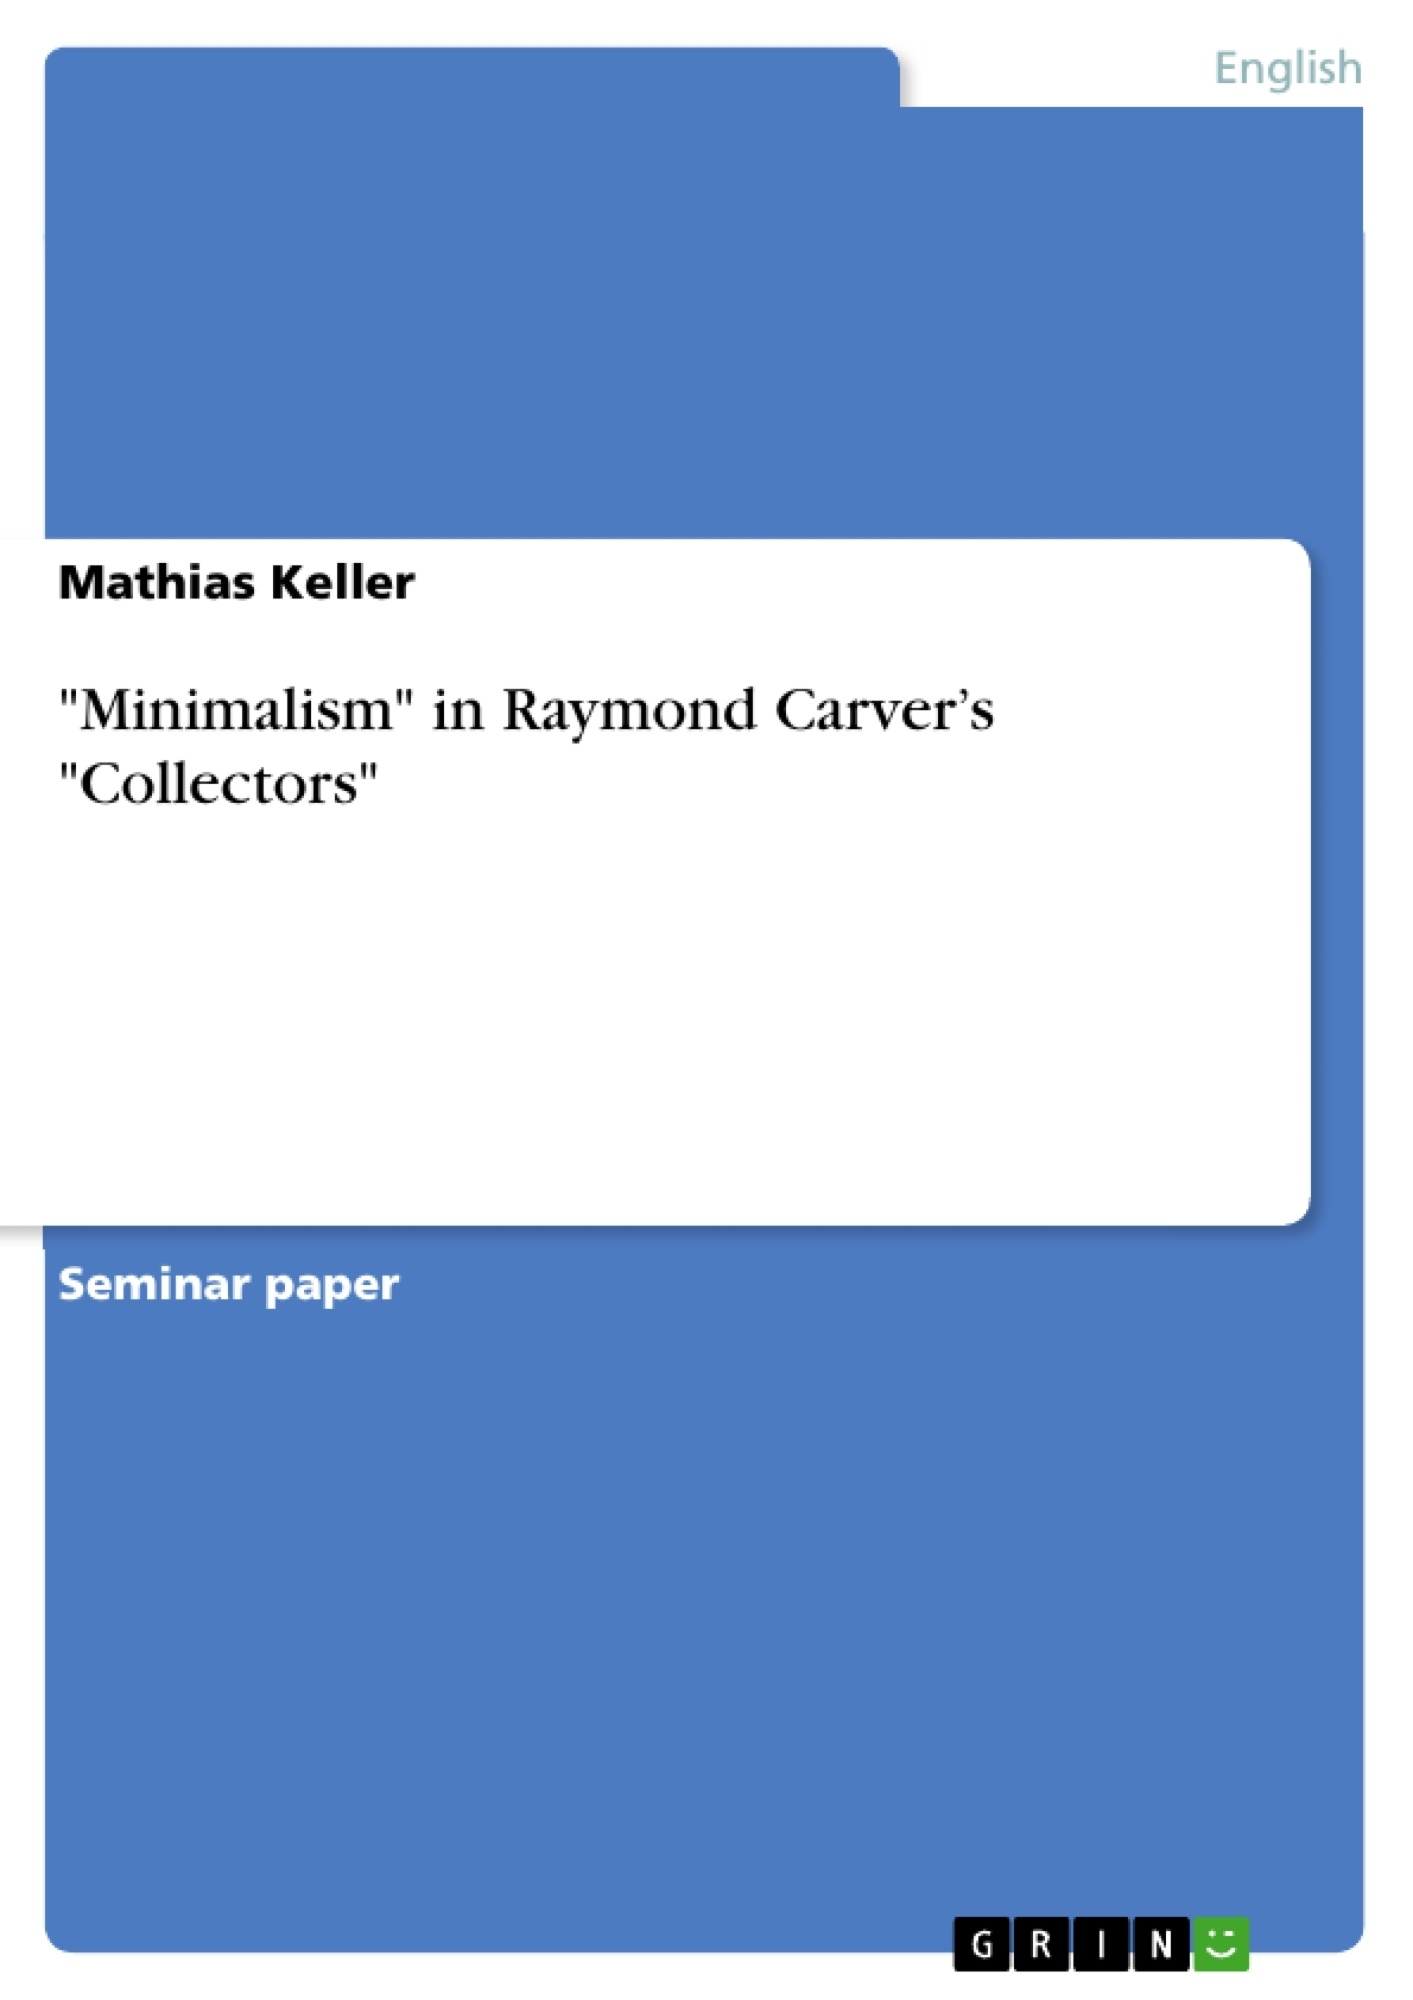 raymond carver cathedral essay cathedral writing style raymond  critical essay on cathedral by raymond carver critical essay on cathedral by raymond carver